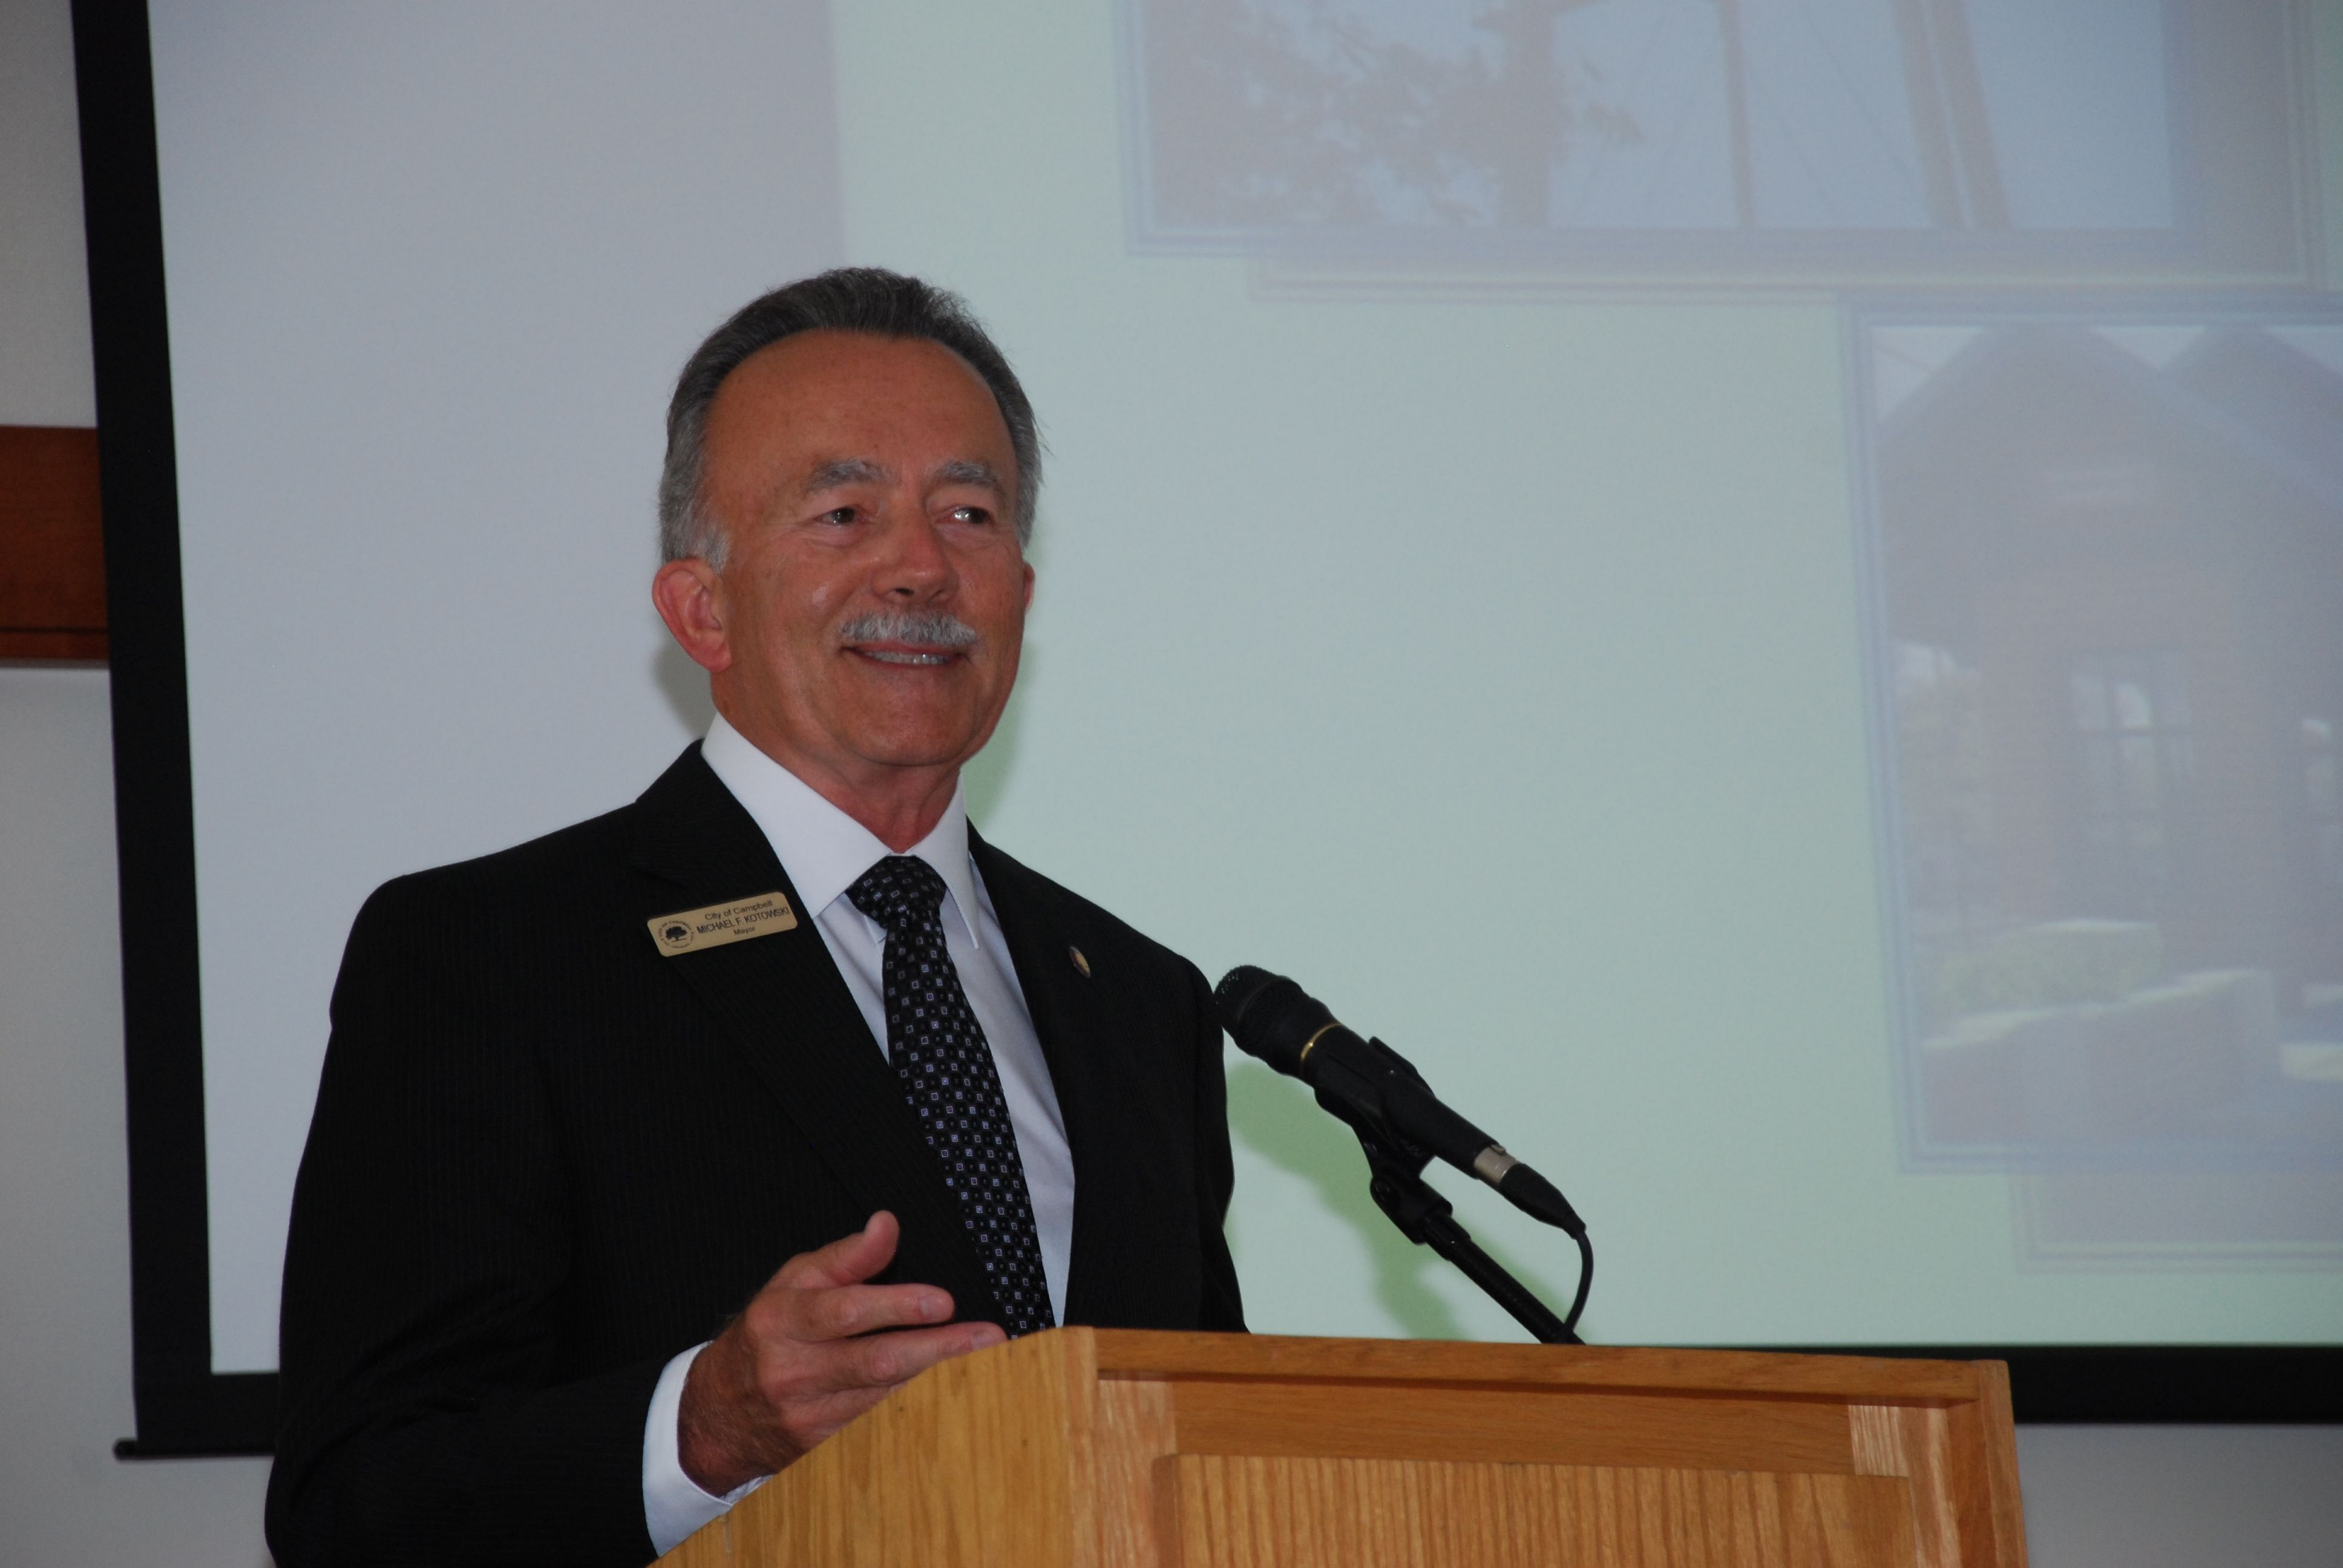 Mayor Mike Kotowski speaking at a Campbell Chamber of